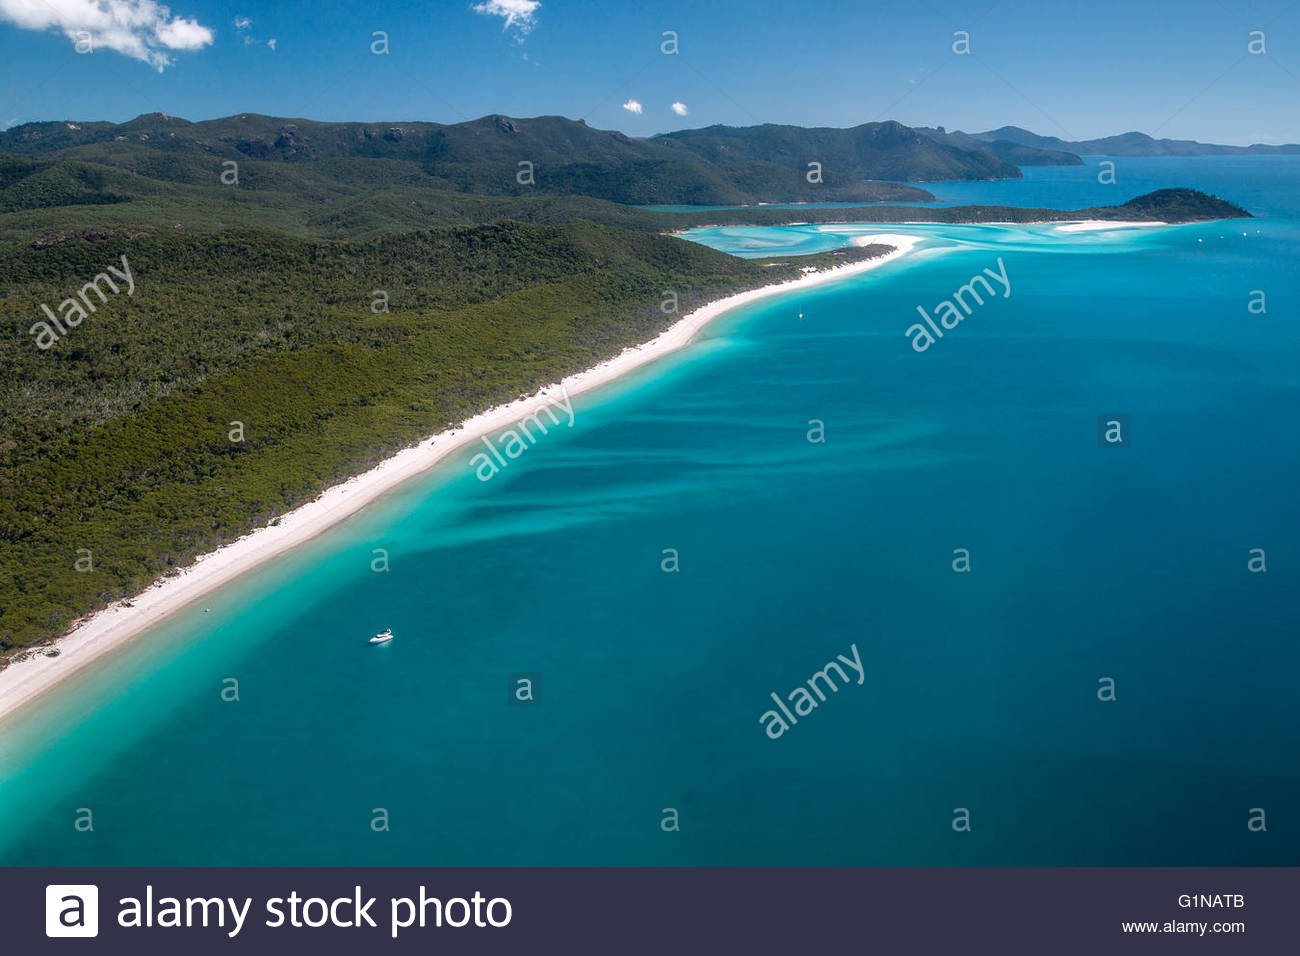 Whitehaven beach on Whitsunday island - Queensland (Australia) - Stock Image